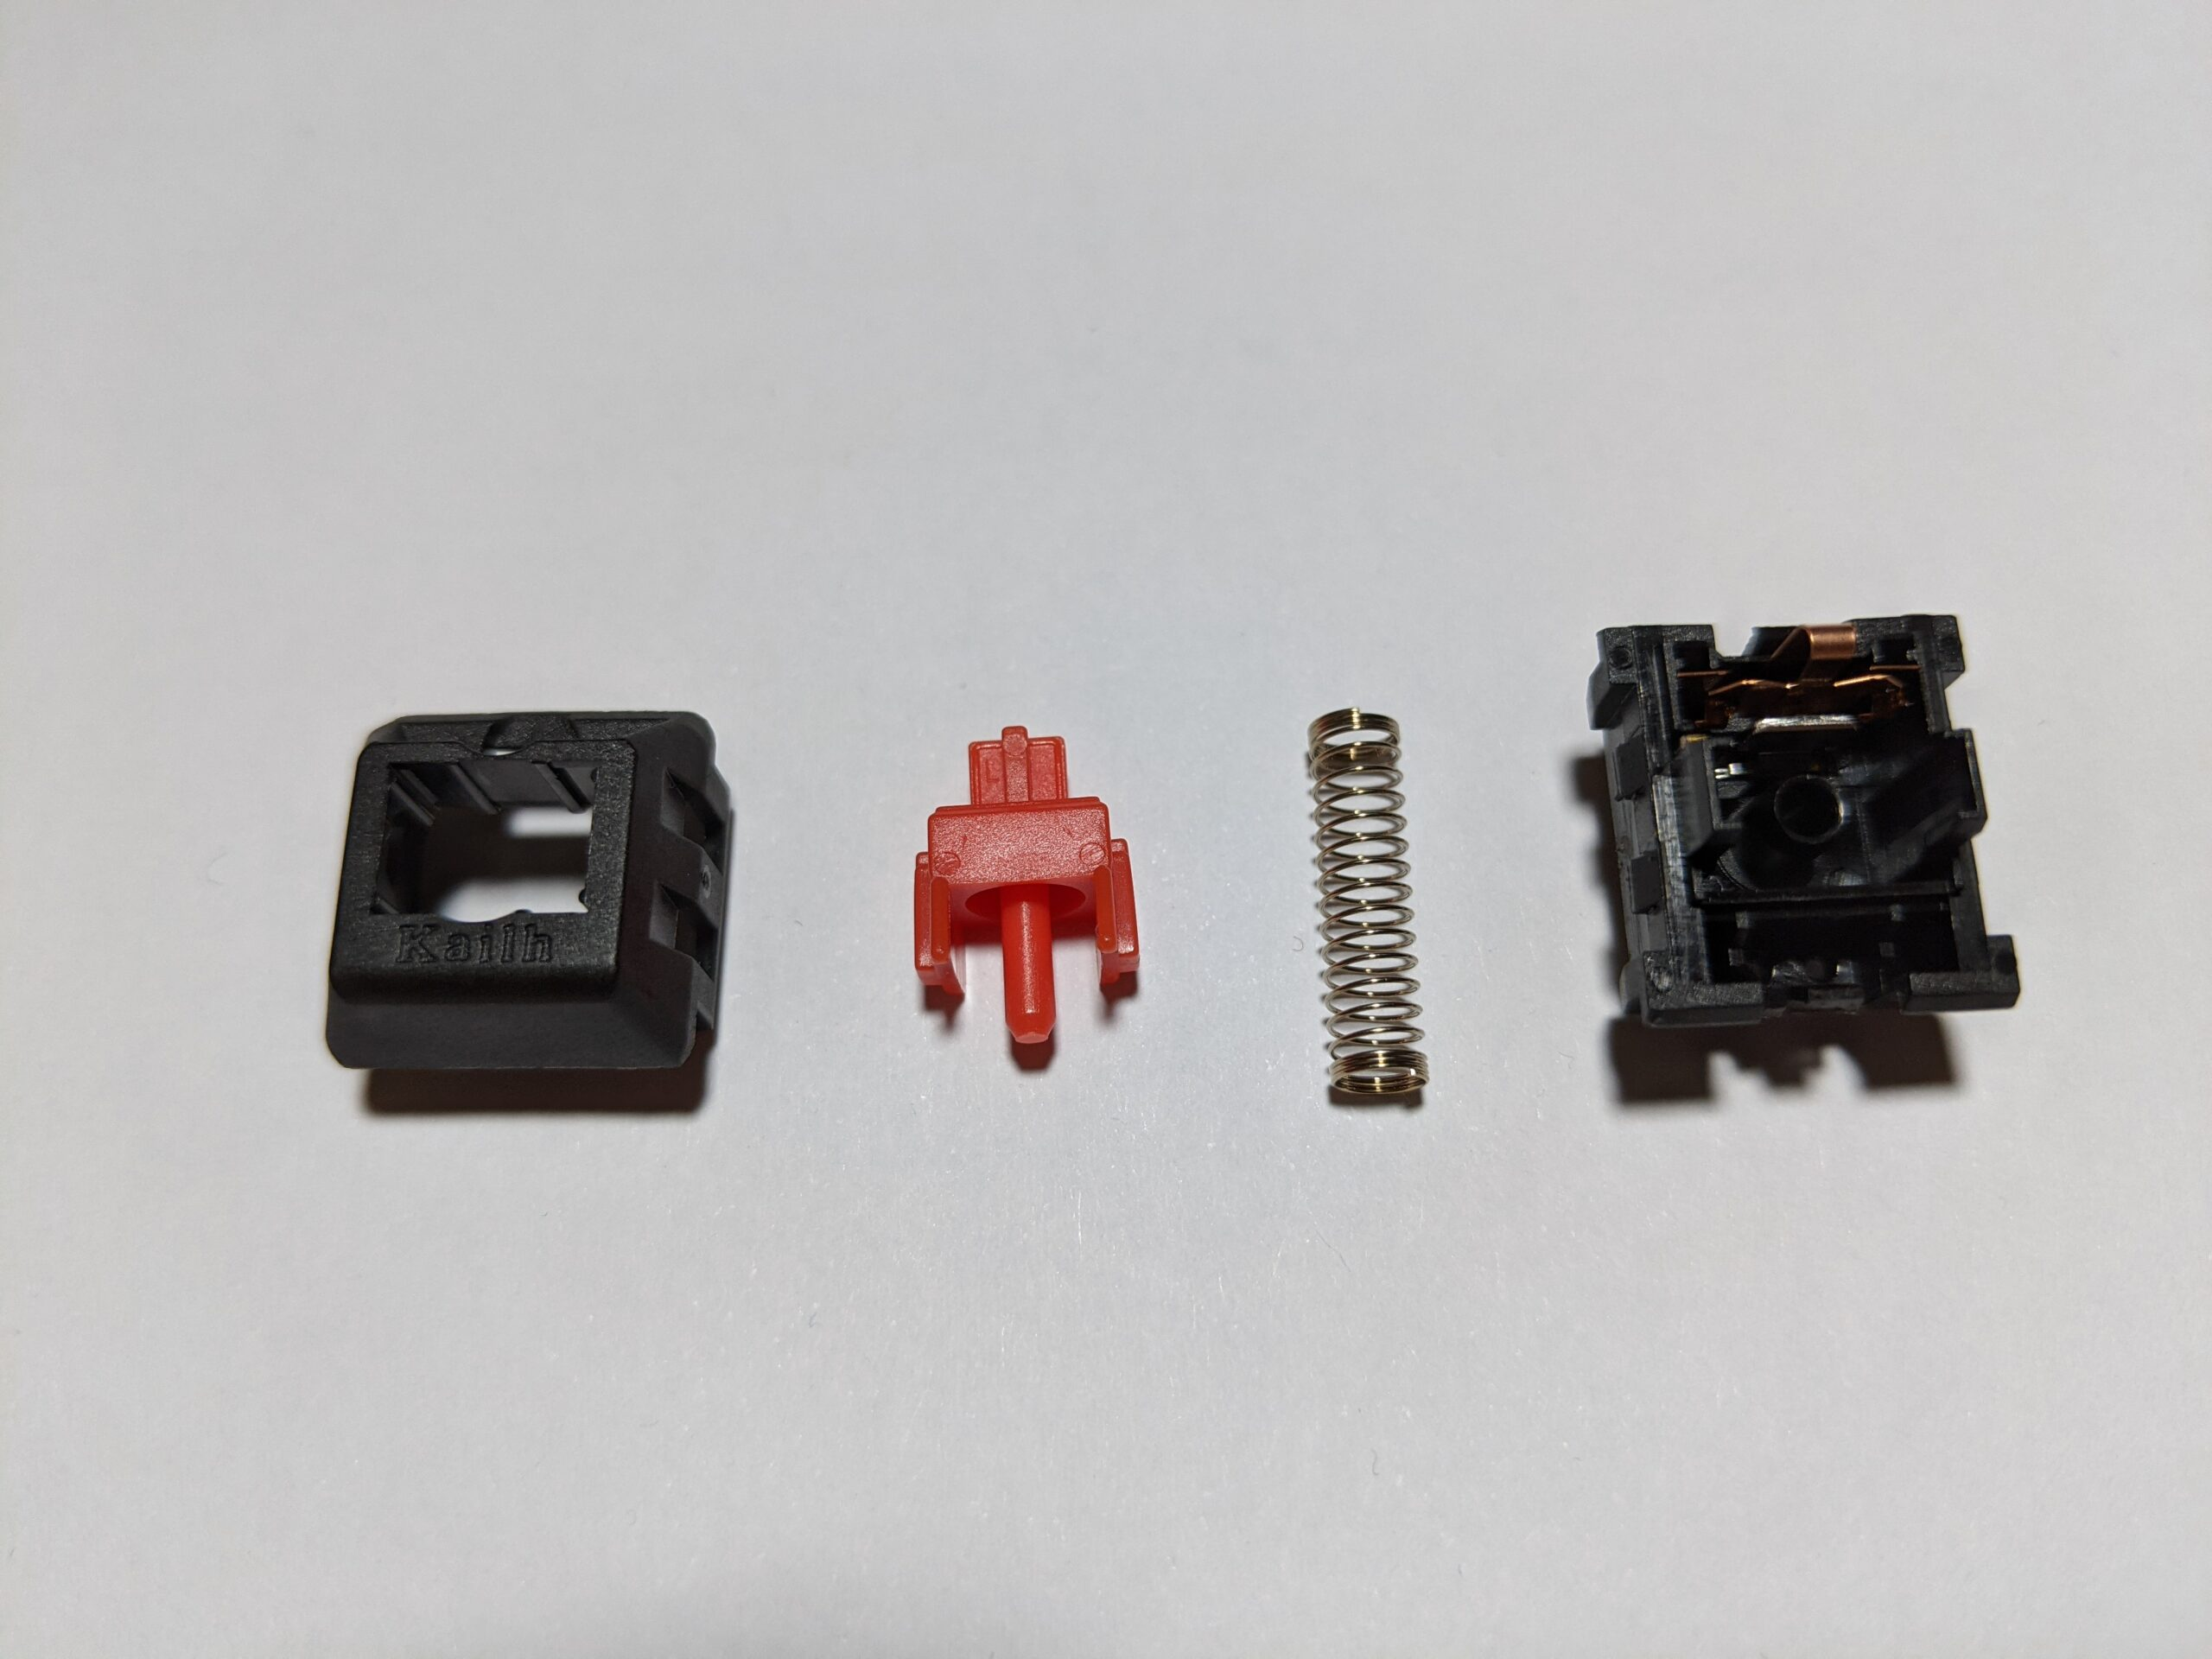 Kailh Red switch disassembled